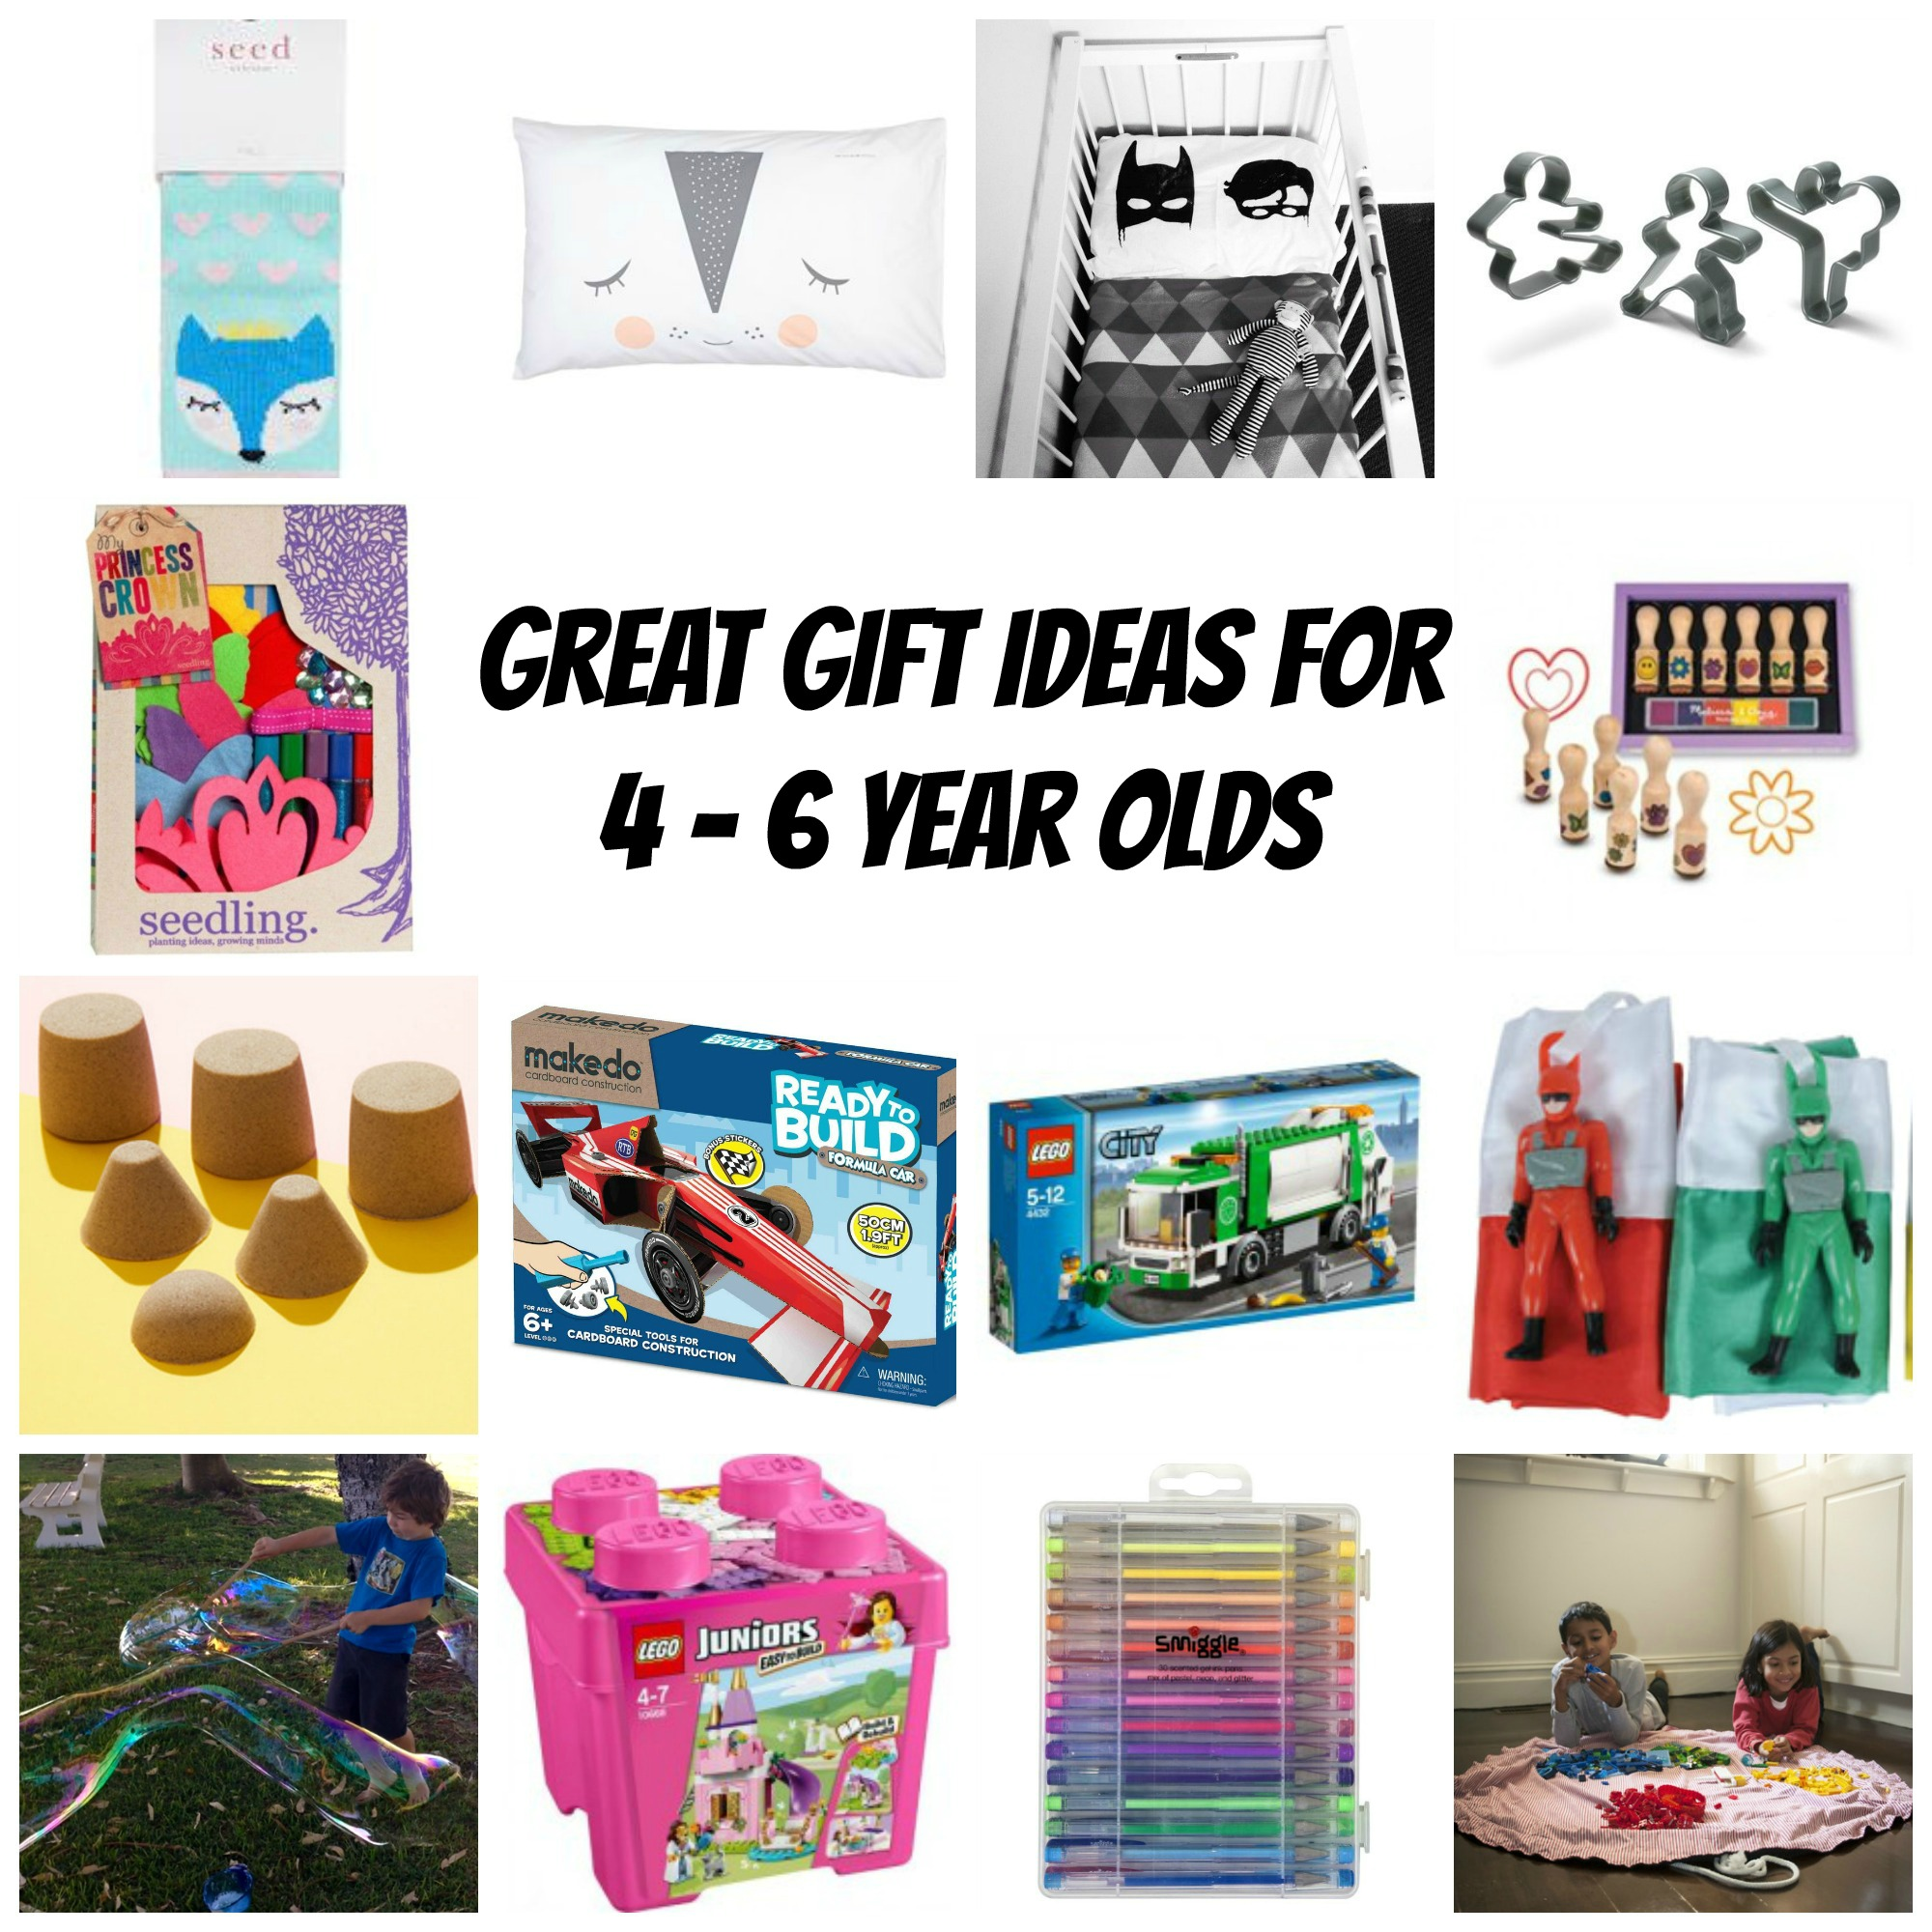 Great gift ideas for 4 – 6 year olds